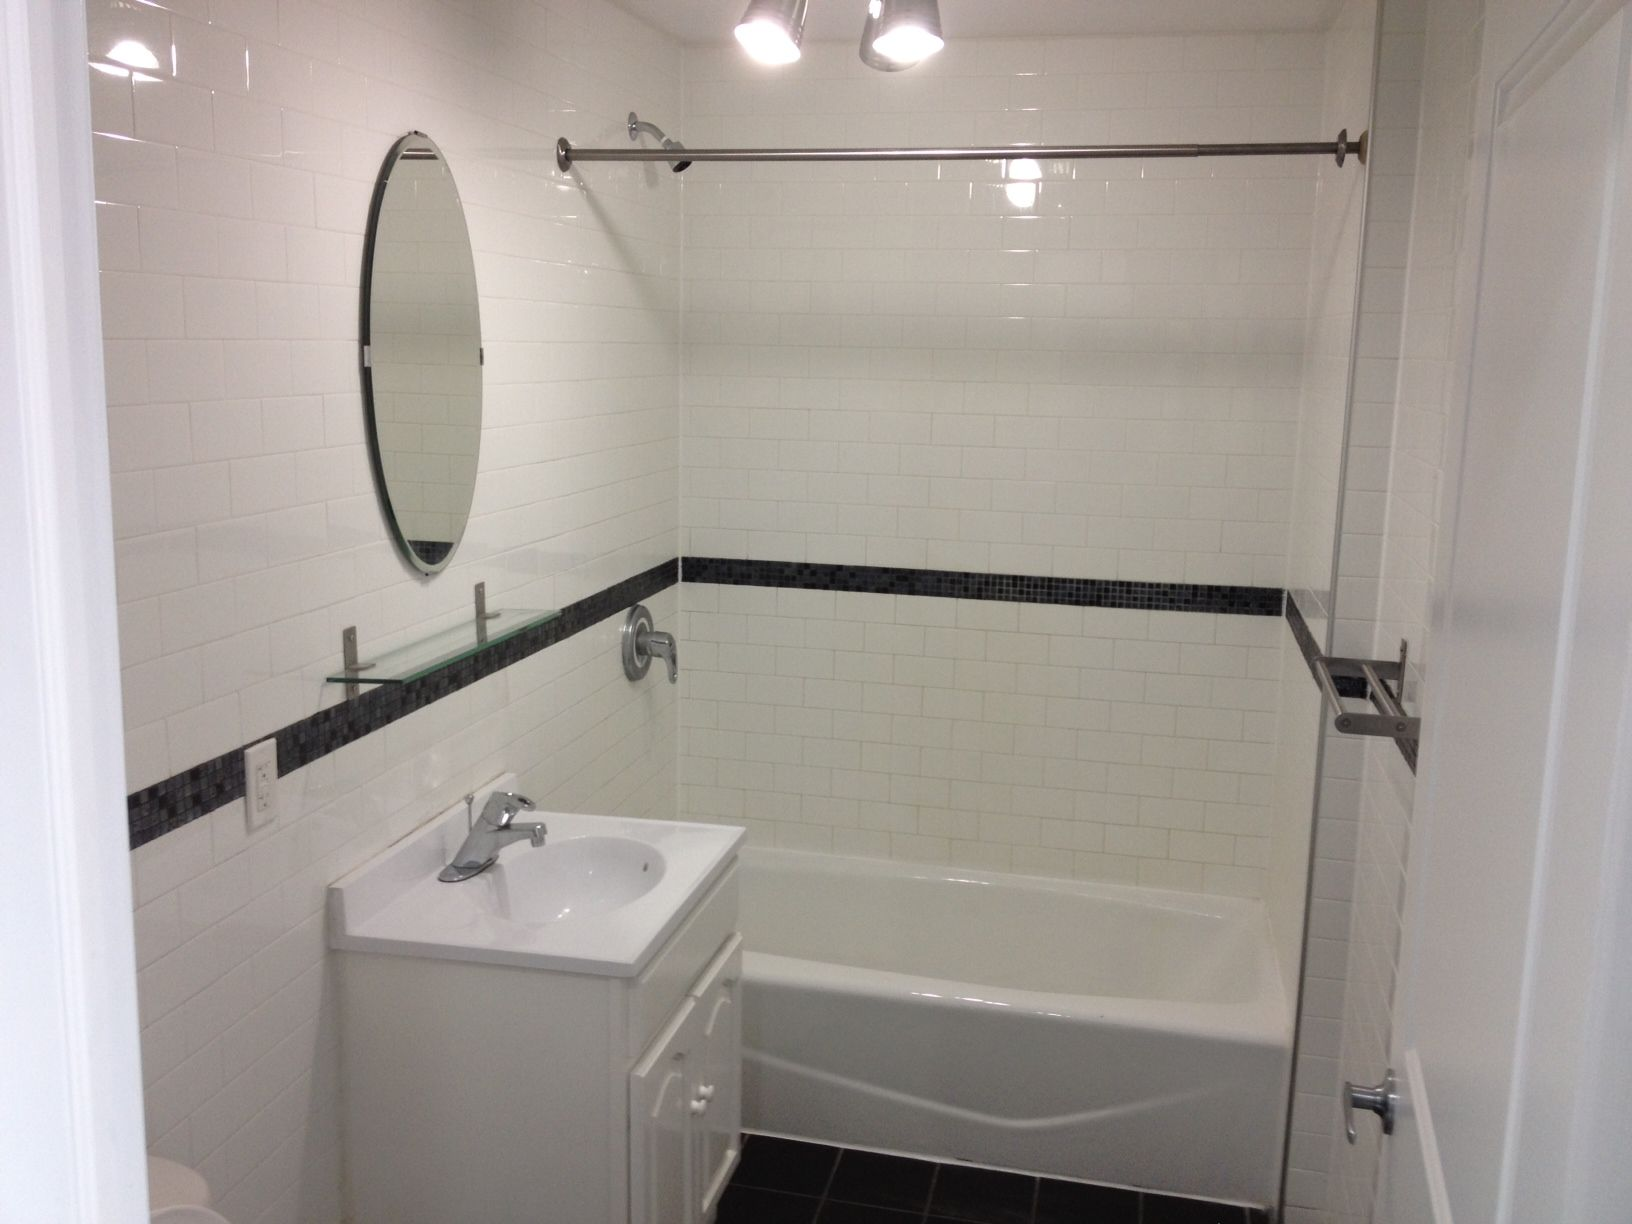 Bathroom Design with Subway Tiles Bathroomsubway